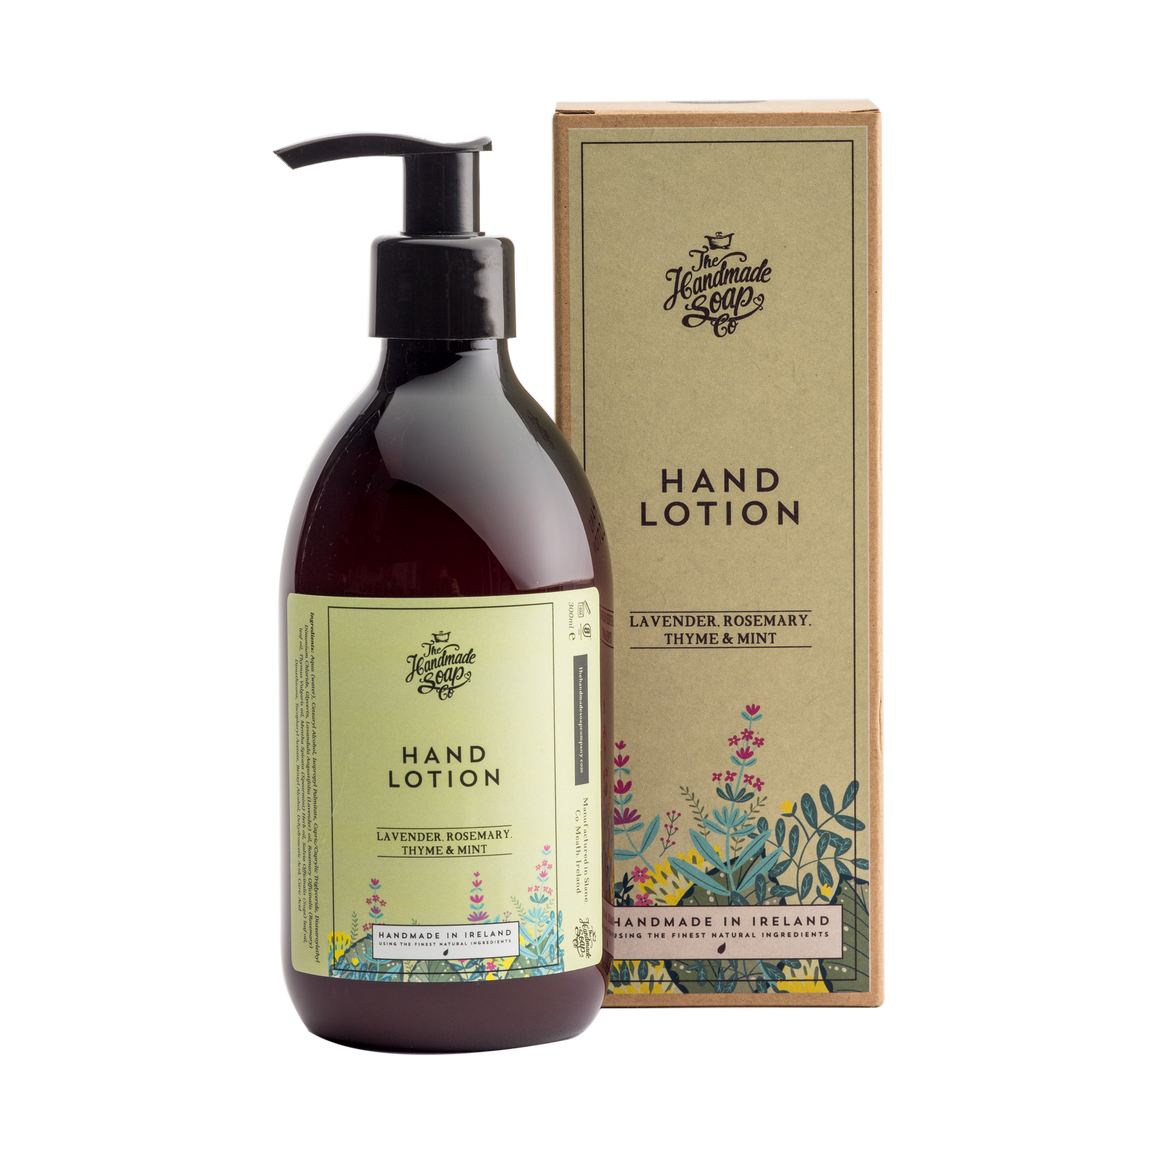 Handmade Soap Co. Lavender, Rosemary, Thyme & Mint Imported Irish Hand Lotion